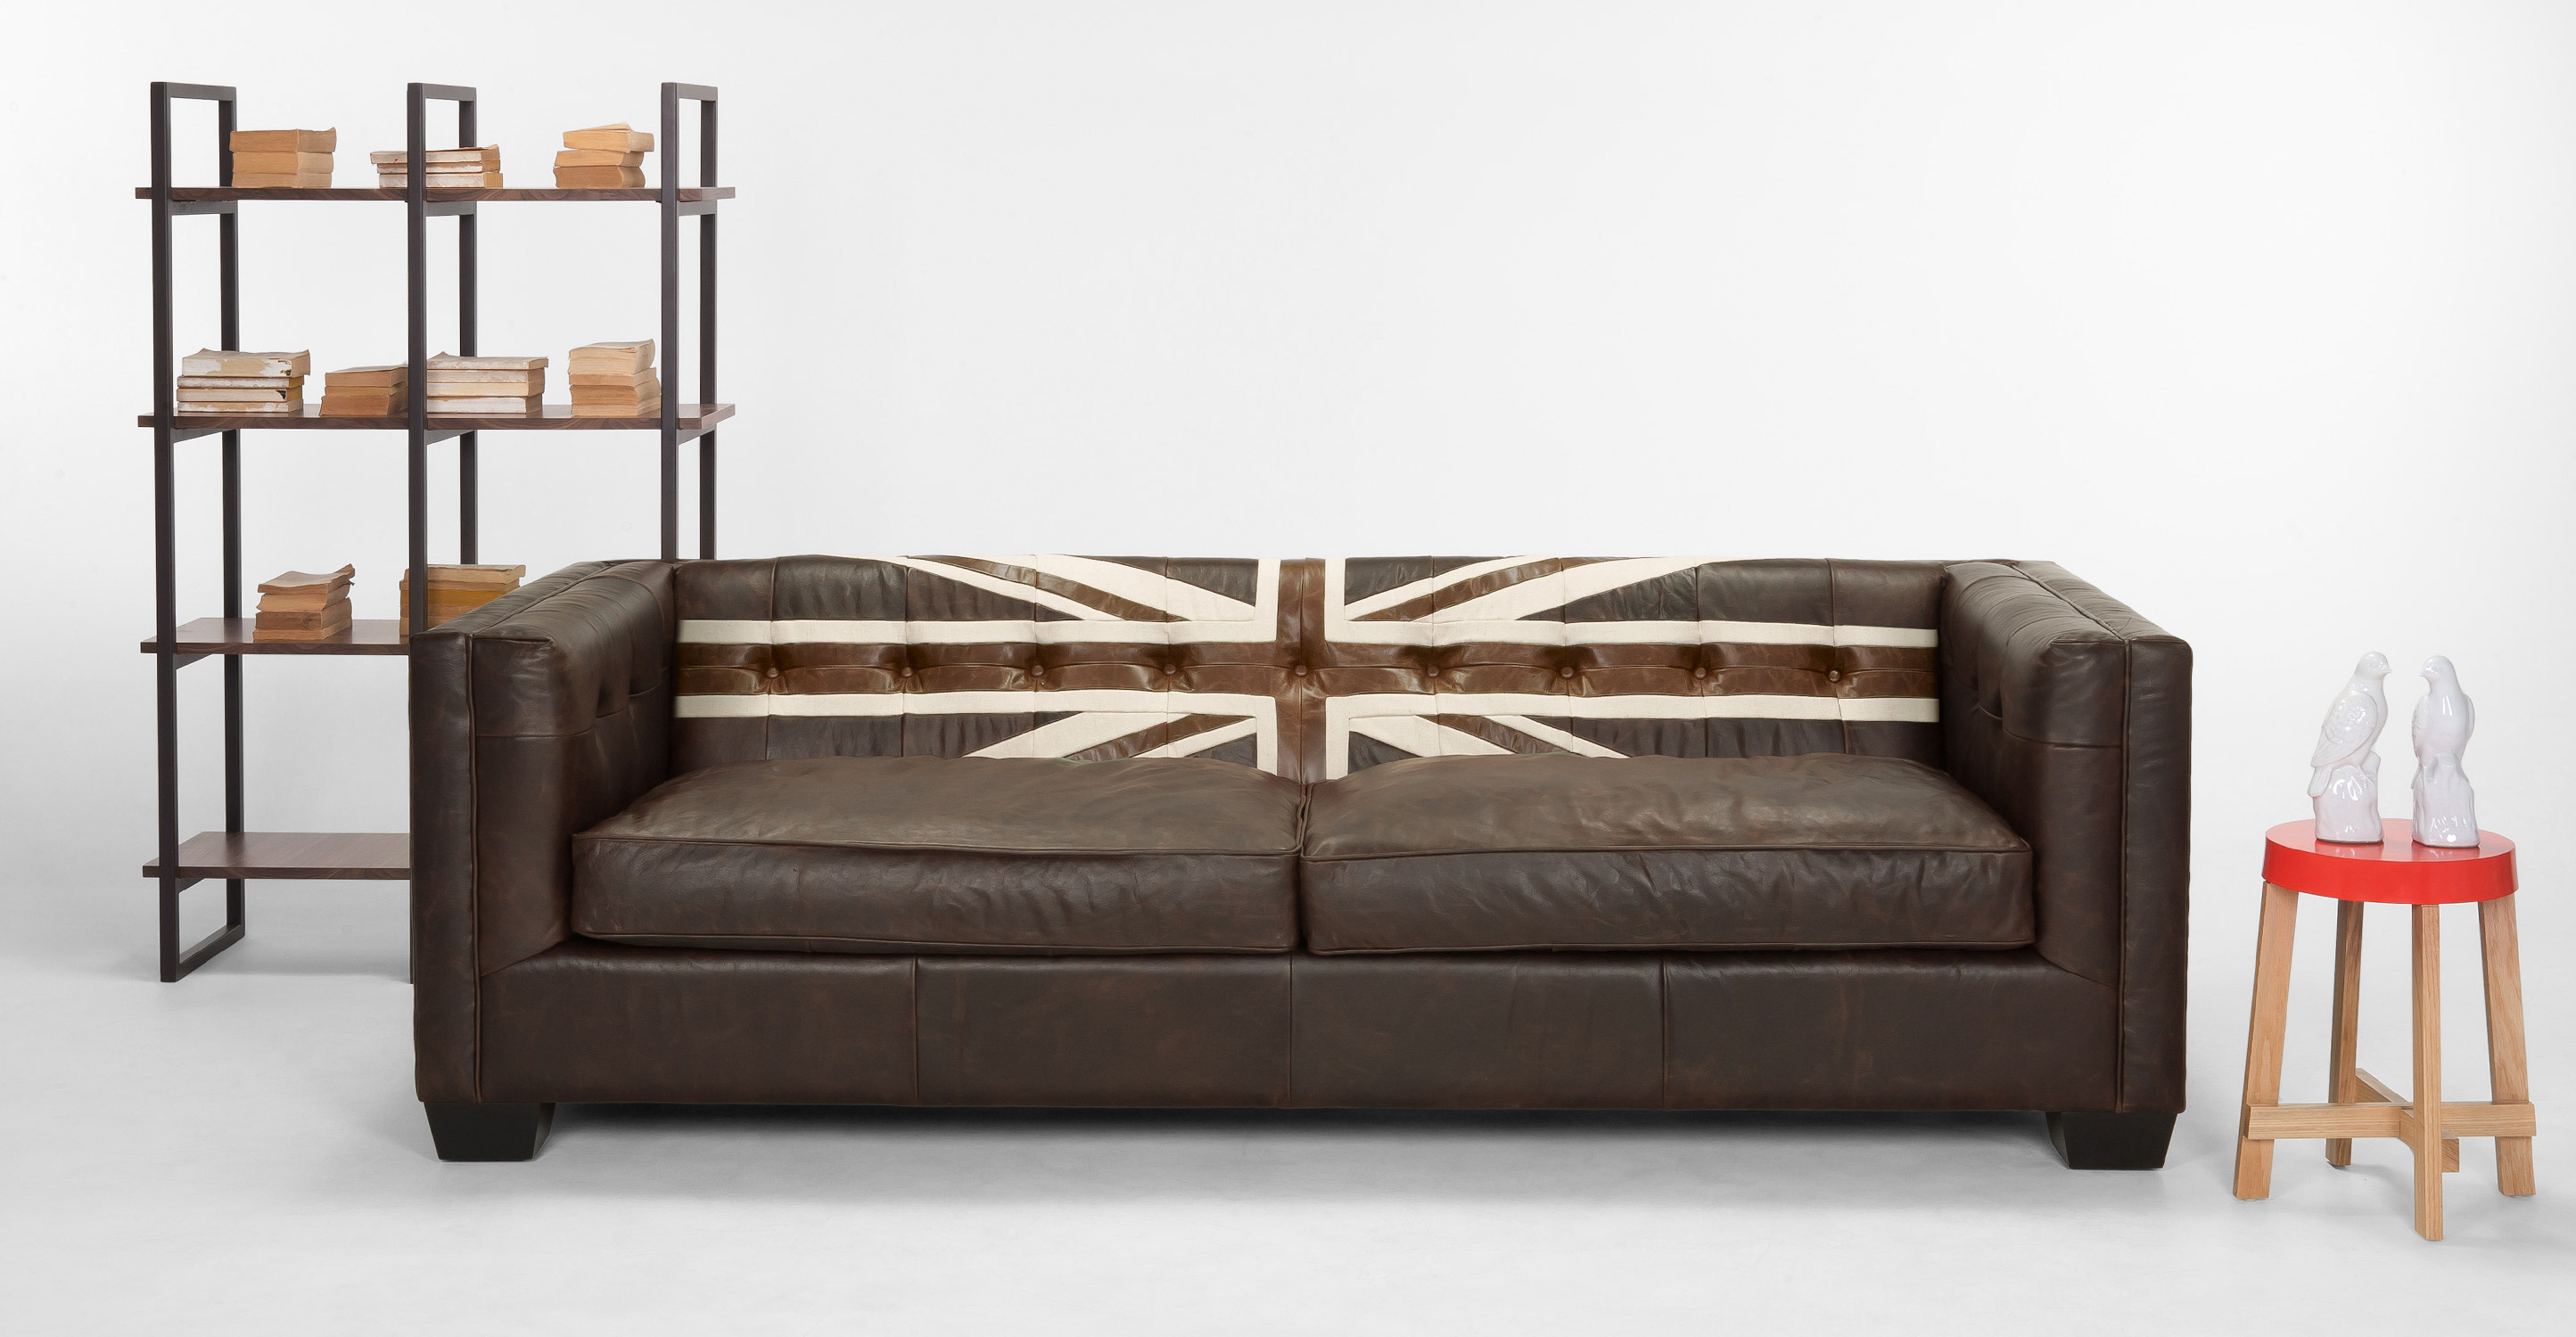 Union Jack 3 seater sofa, in Vintage Brown Leather